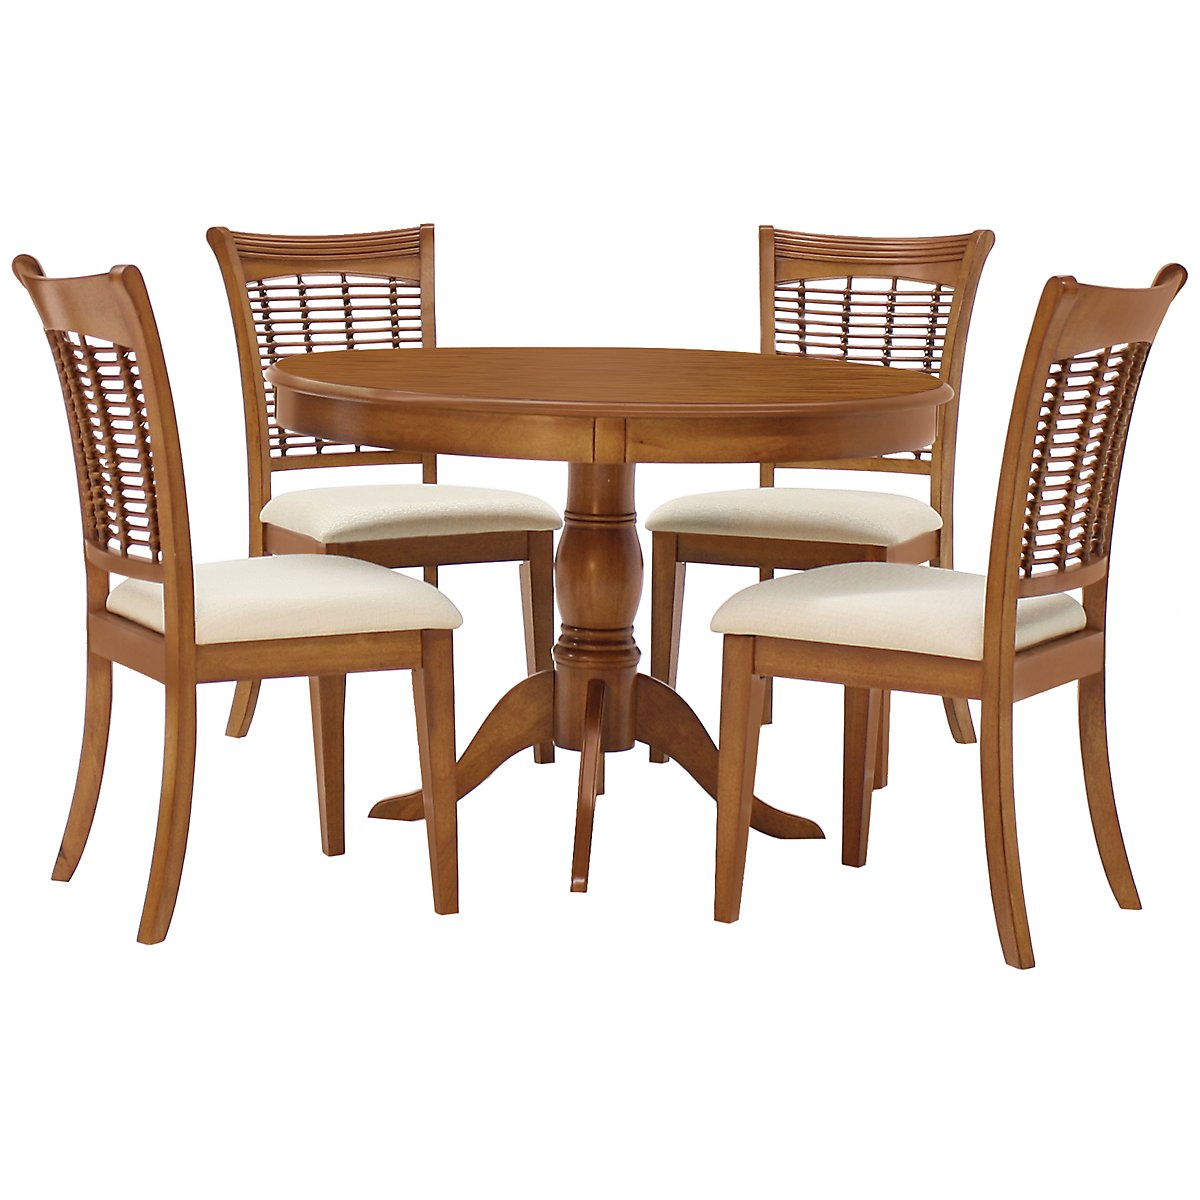 Table And Chairs: Bayberry Mid Tone Round Table & 4 Chairs